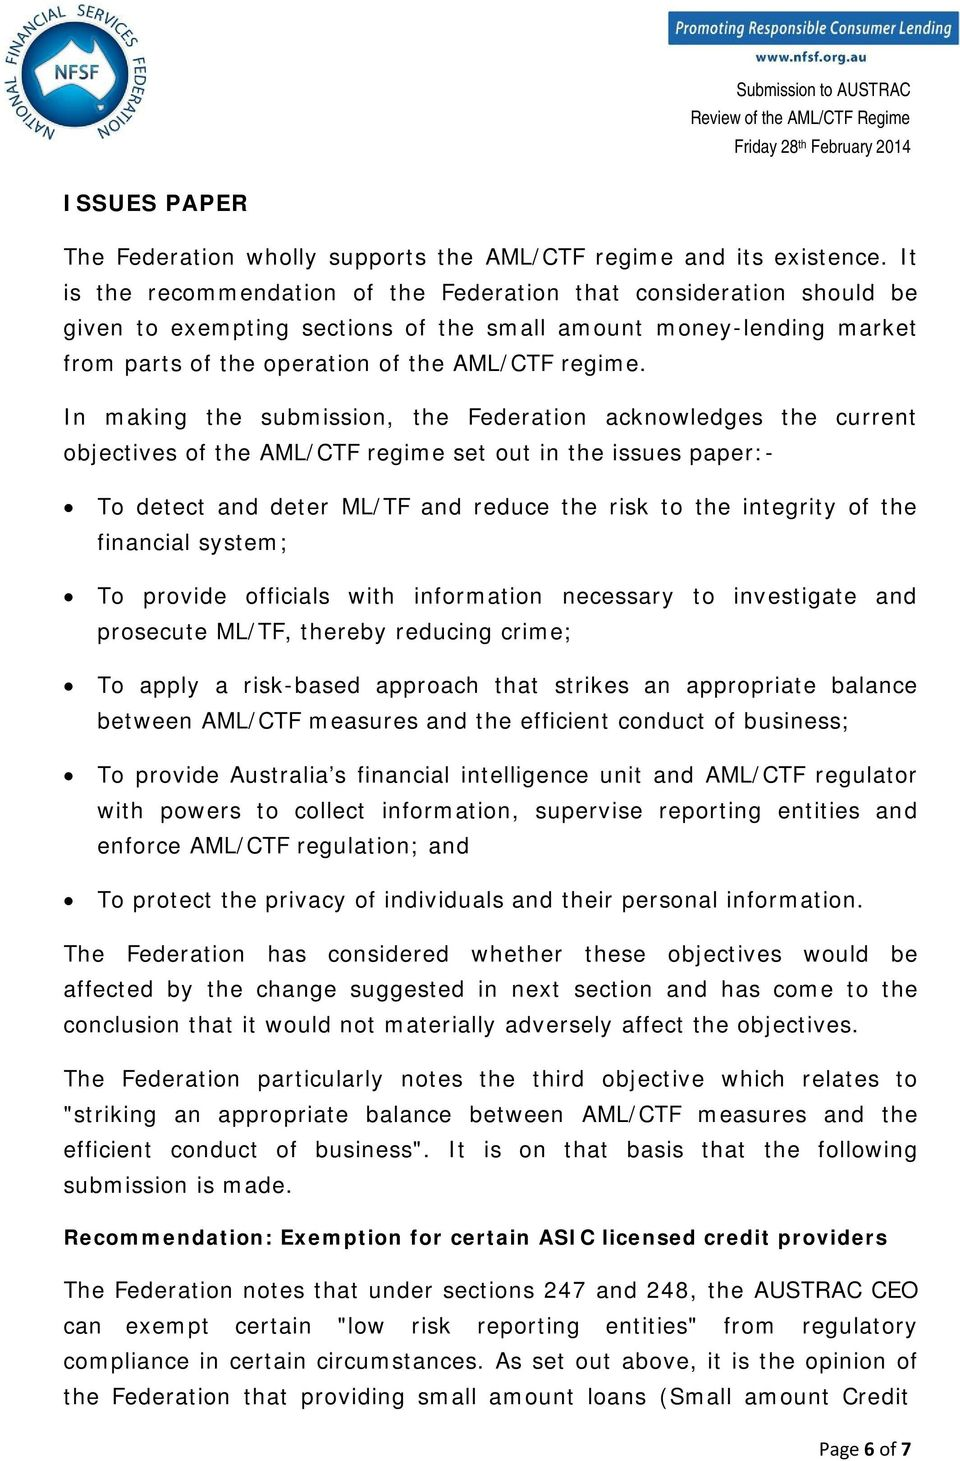 In making the submission, the Federation acknowledges the current objectives of the AML/CTF regime set out in the issues paper:- To detect and deter ML/TF and reduce the risk to the integrity of the